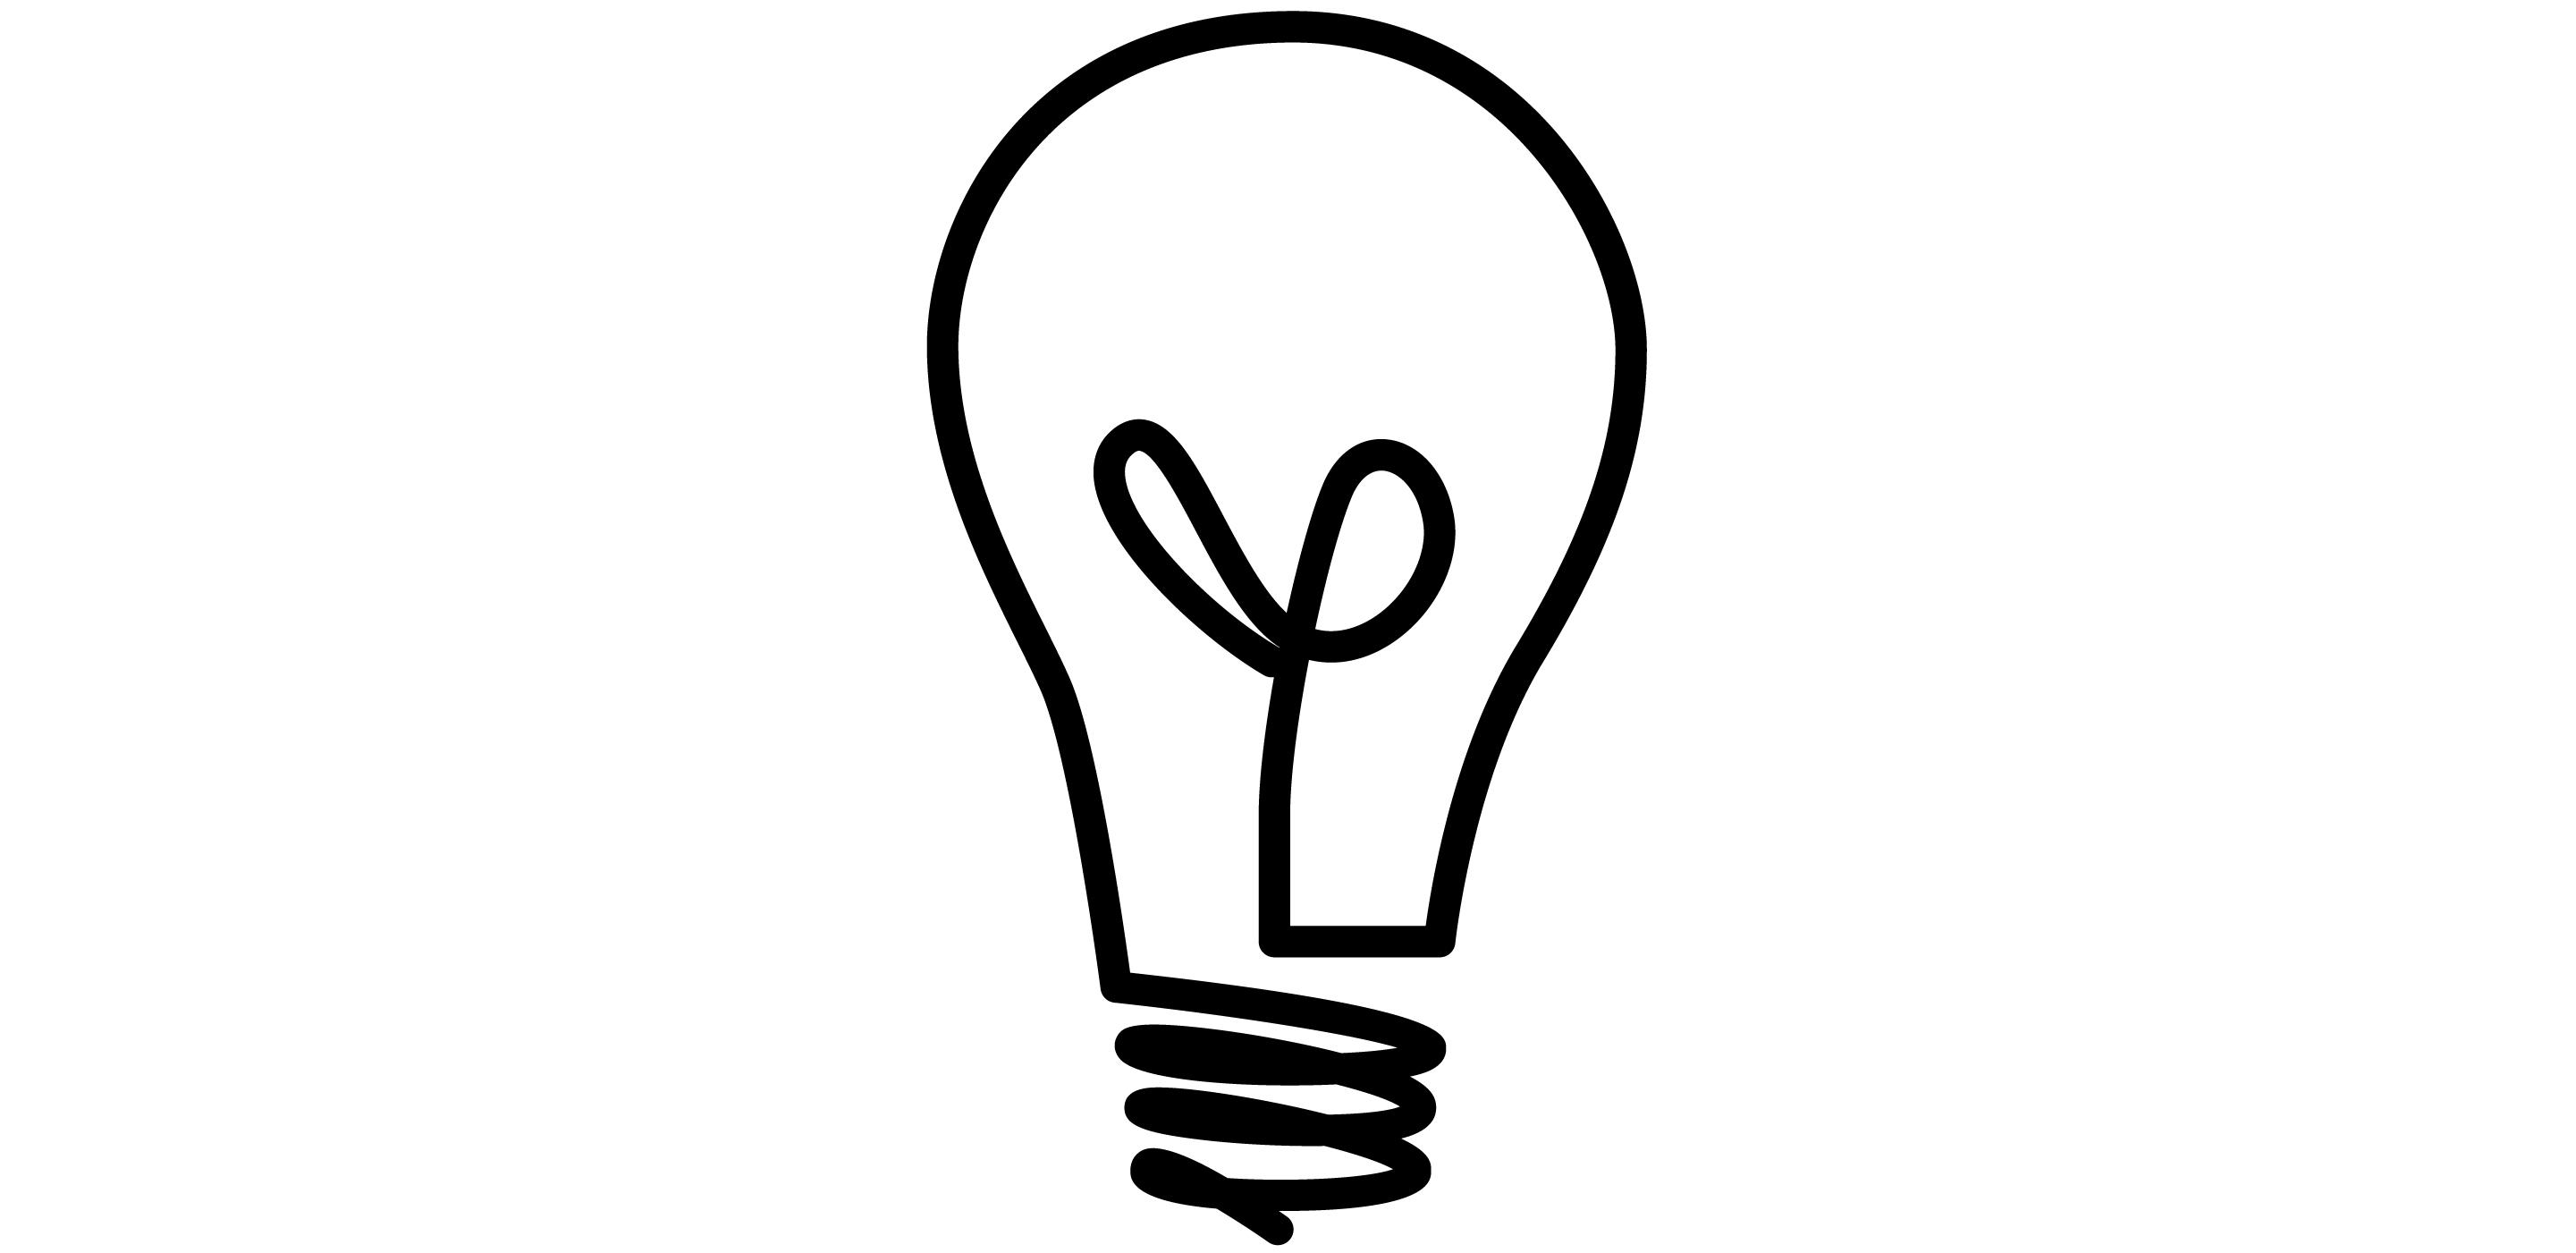 Lightbulf clipart clipart transparent stock Pictures Of Light Bulbs Clipart | Free download best Pictures Of ... clipart transparent stock